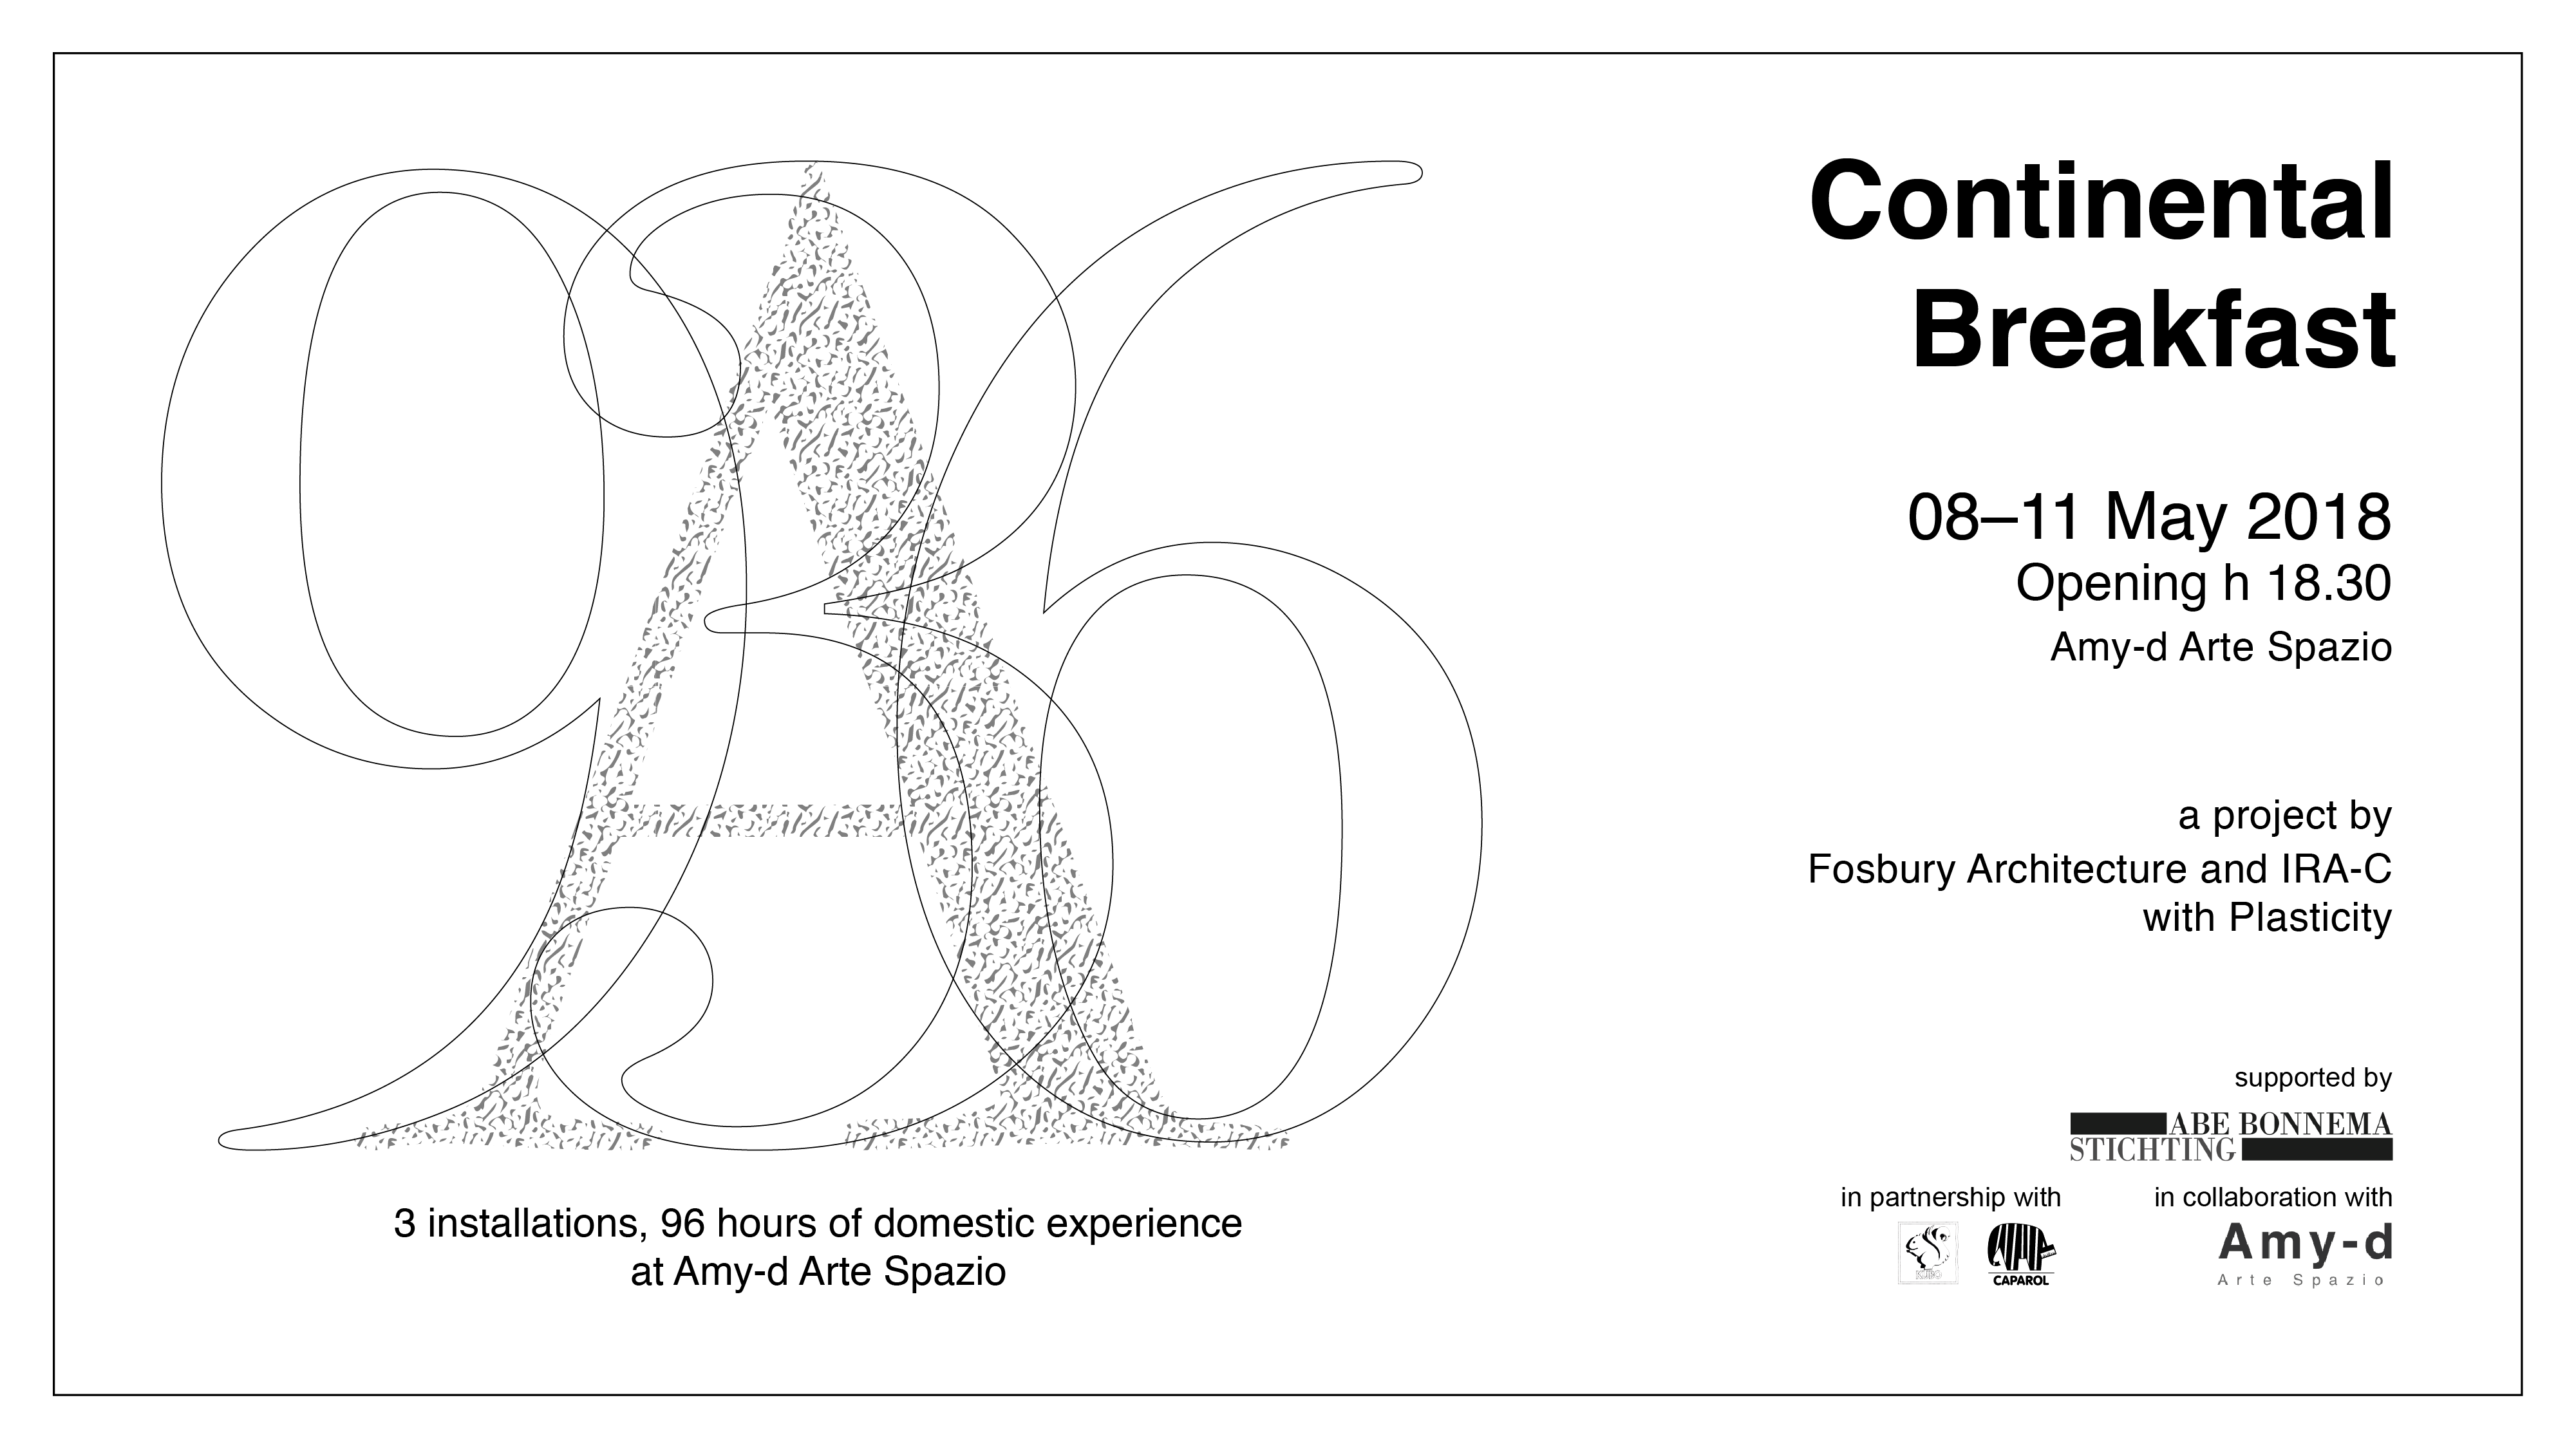 Continental Breakfast - 3 installations, 96 hours of domestic experience at Amy-d Arte Spazio